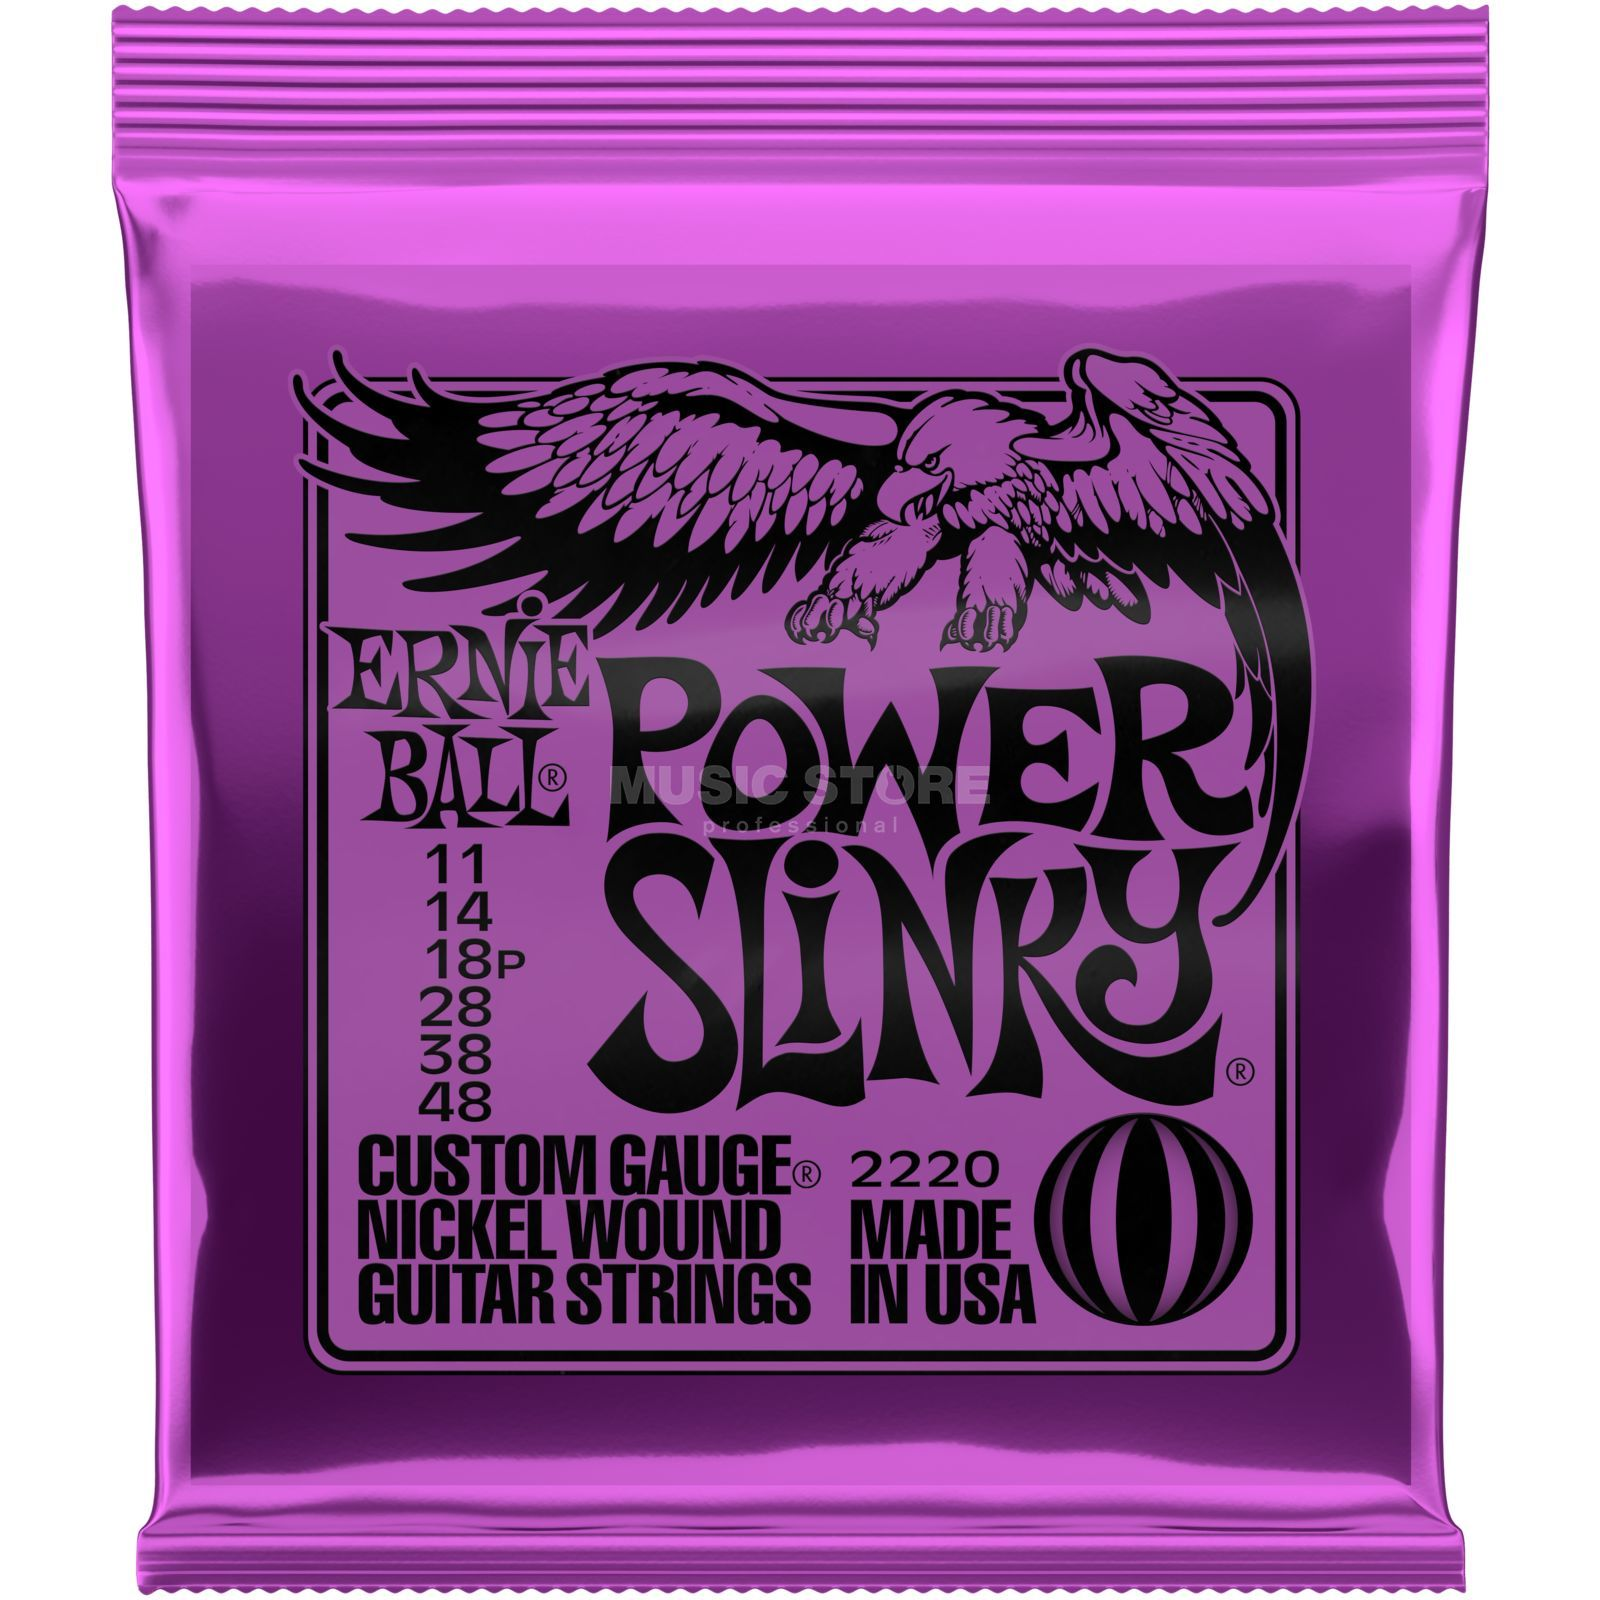 Ernie Ball E-Guitar Strings 11-48 Power Slinky Nickel Wound EB2220 Immagine prodotto